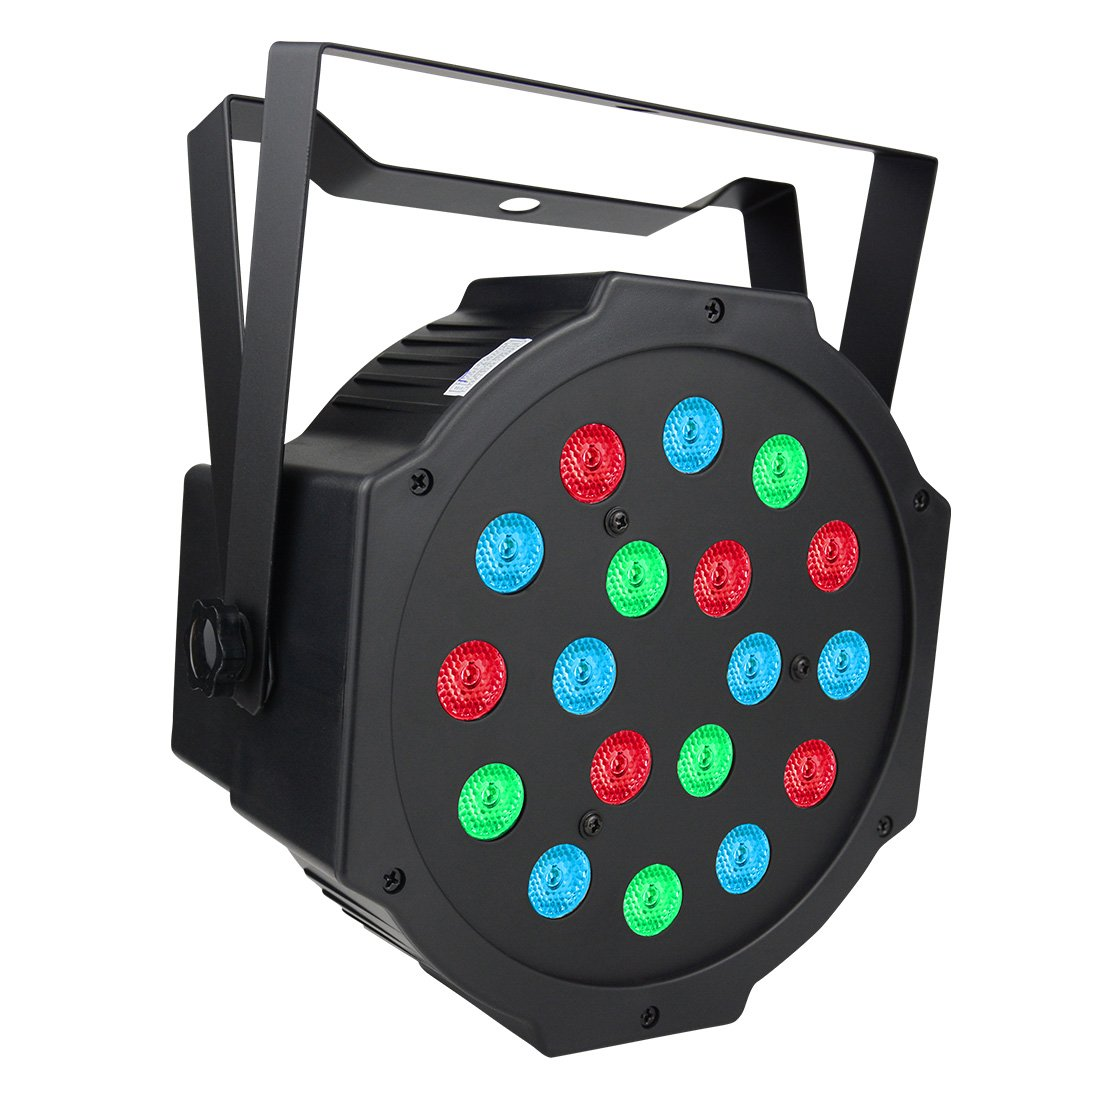 BETOPPER Par Lights 18 LED RGB 24W Par Stage Lights by DMX512 Music-activated(Sound Activated) for Wedding Show Club Bar Decoration